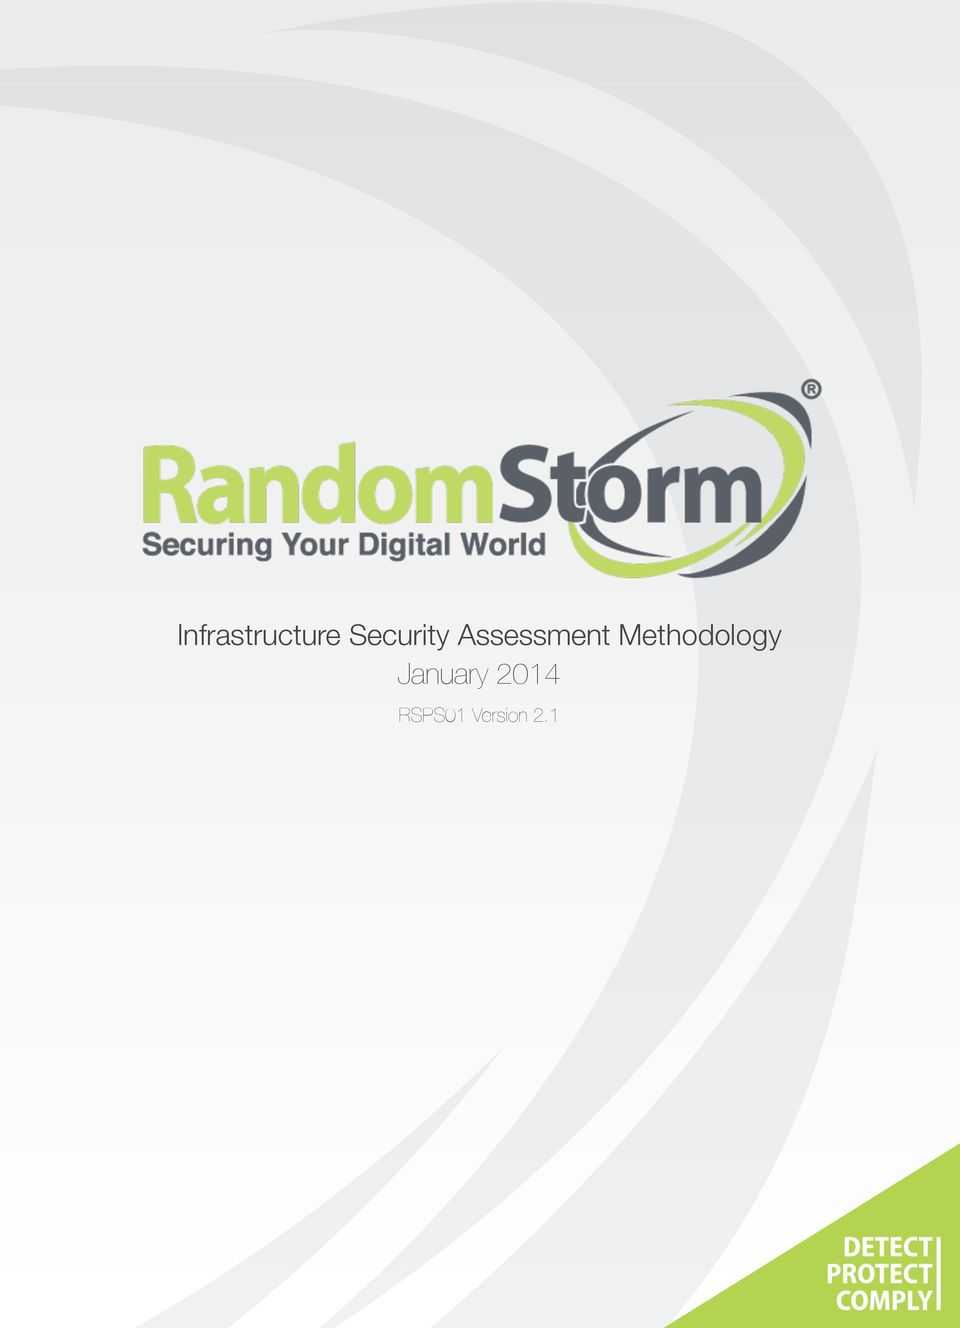 2.1 RandomStorm - Security Assessment